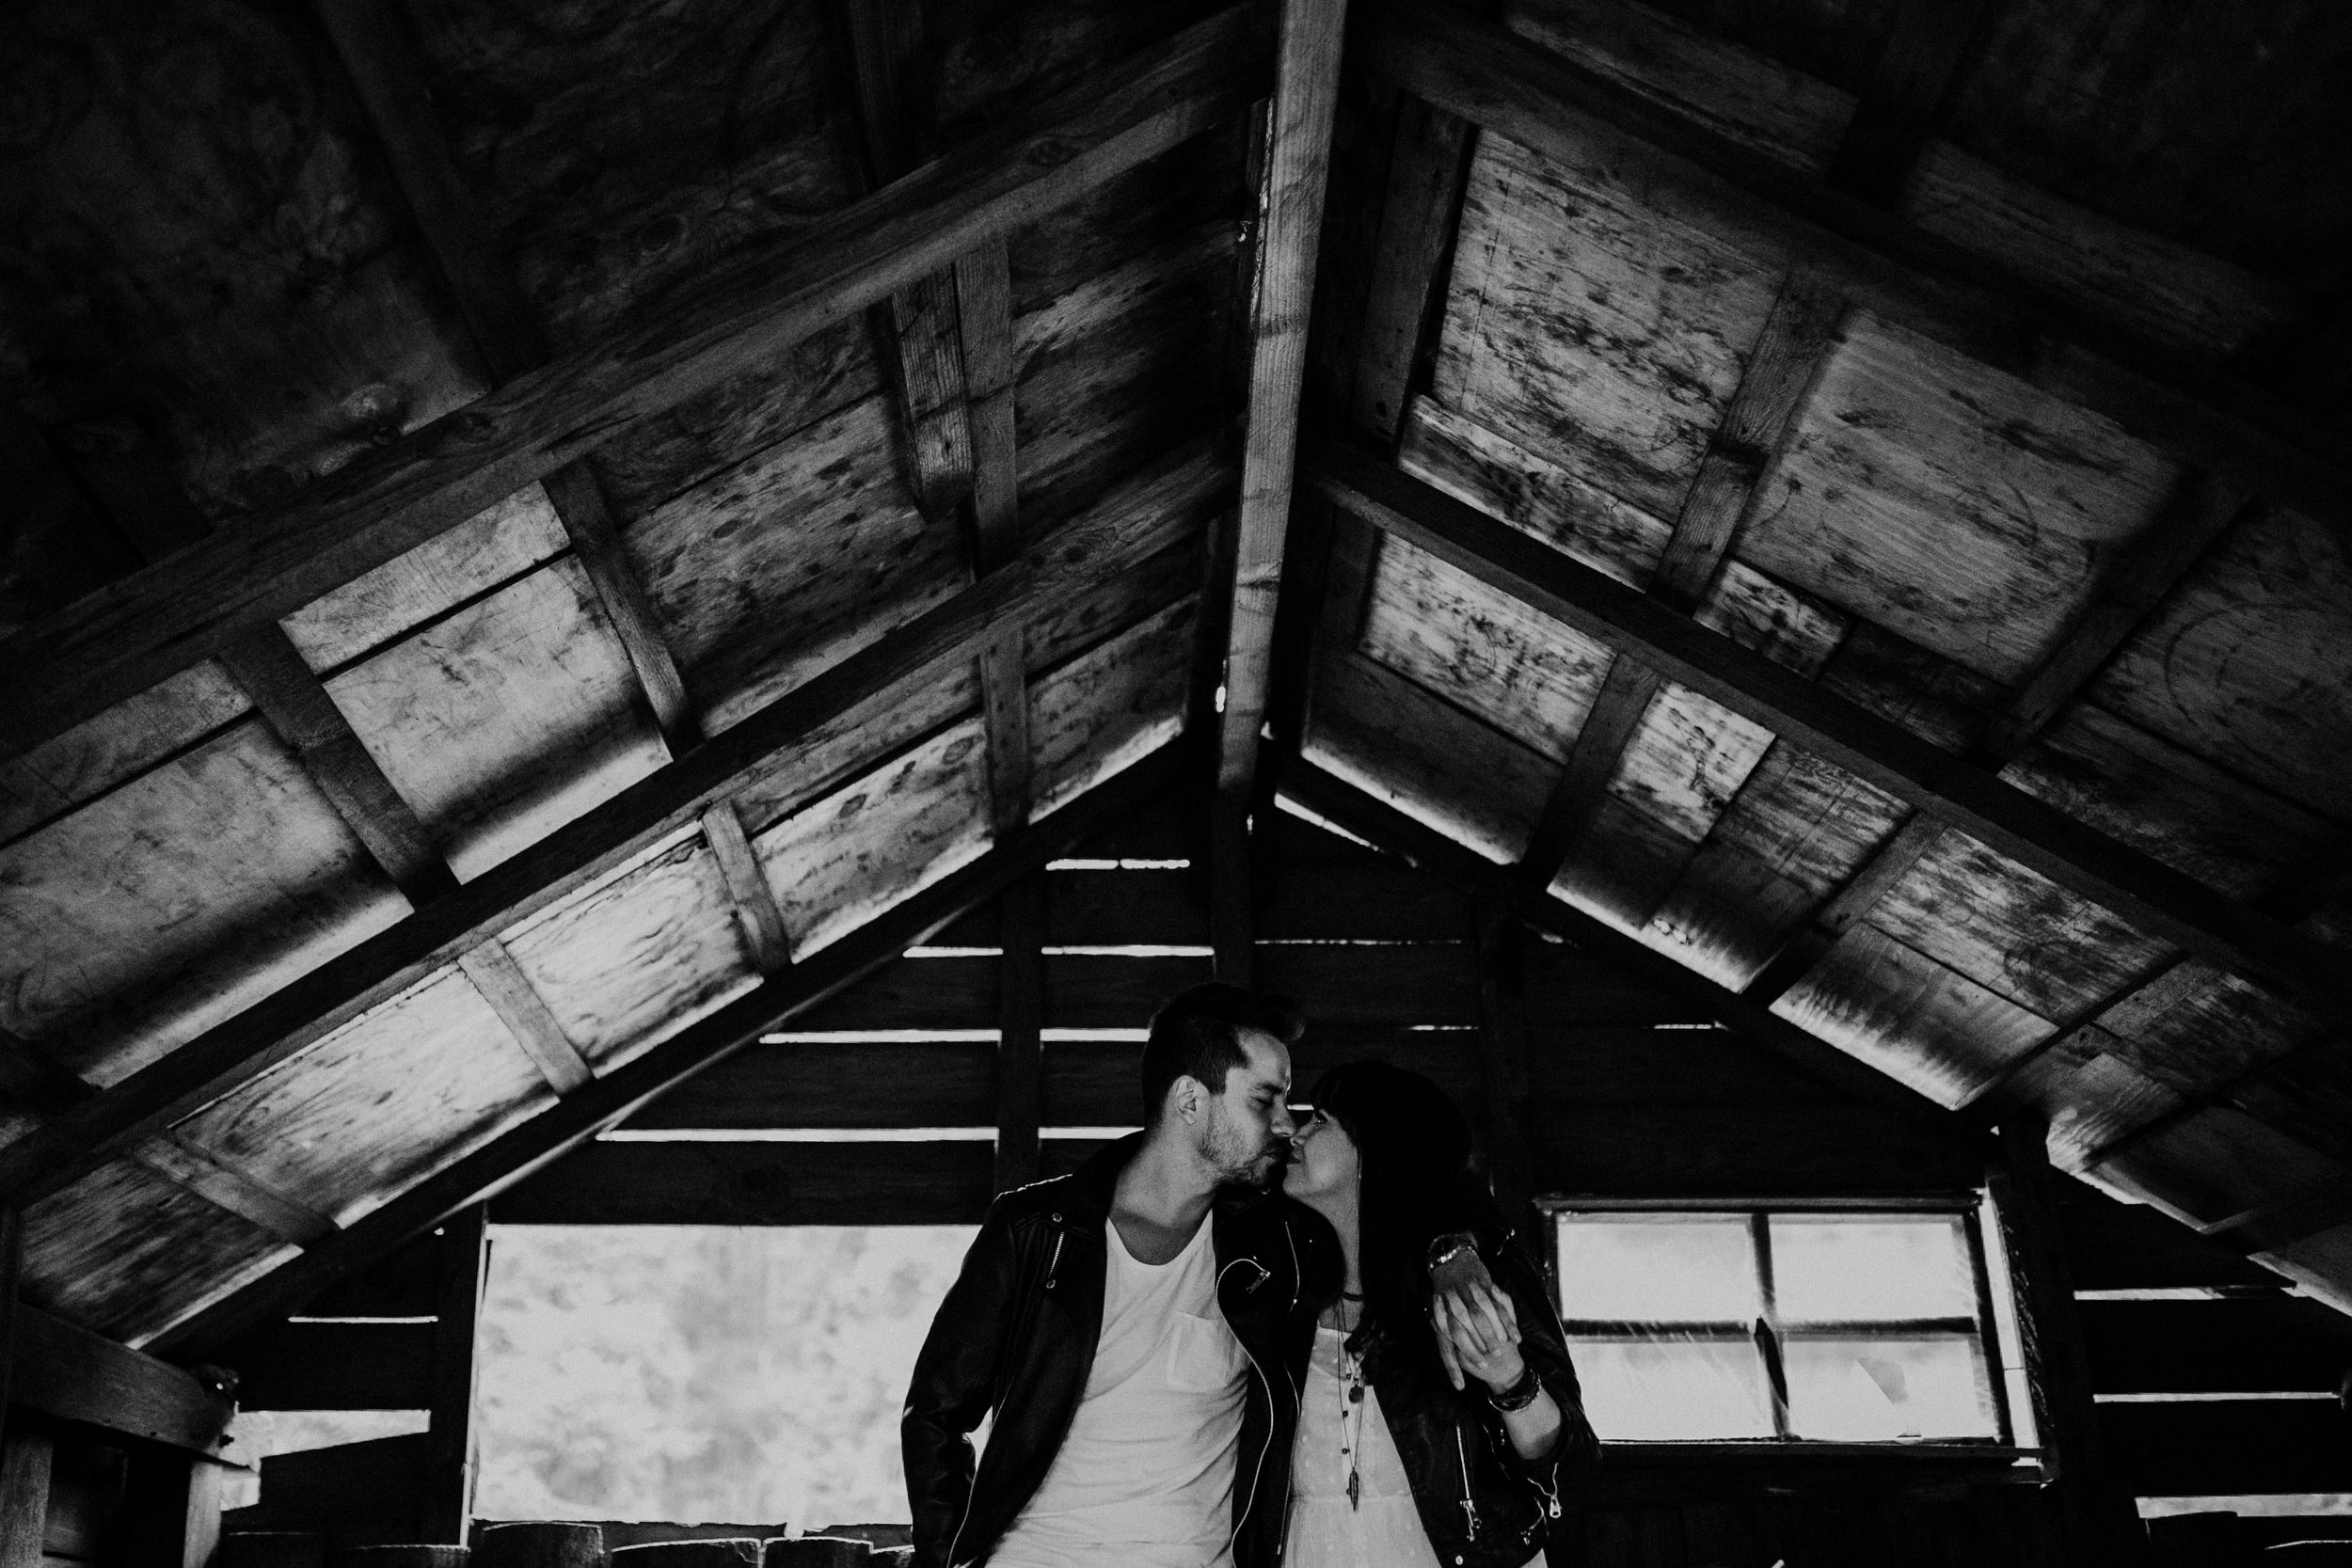 alfonso_flores_destination_wedding_photographer_sesion_de_pareja_la_marqueza_cdmx_10.jpg